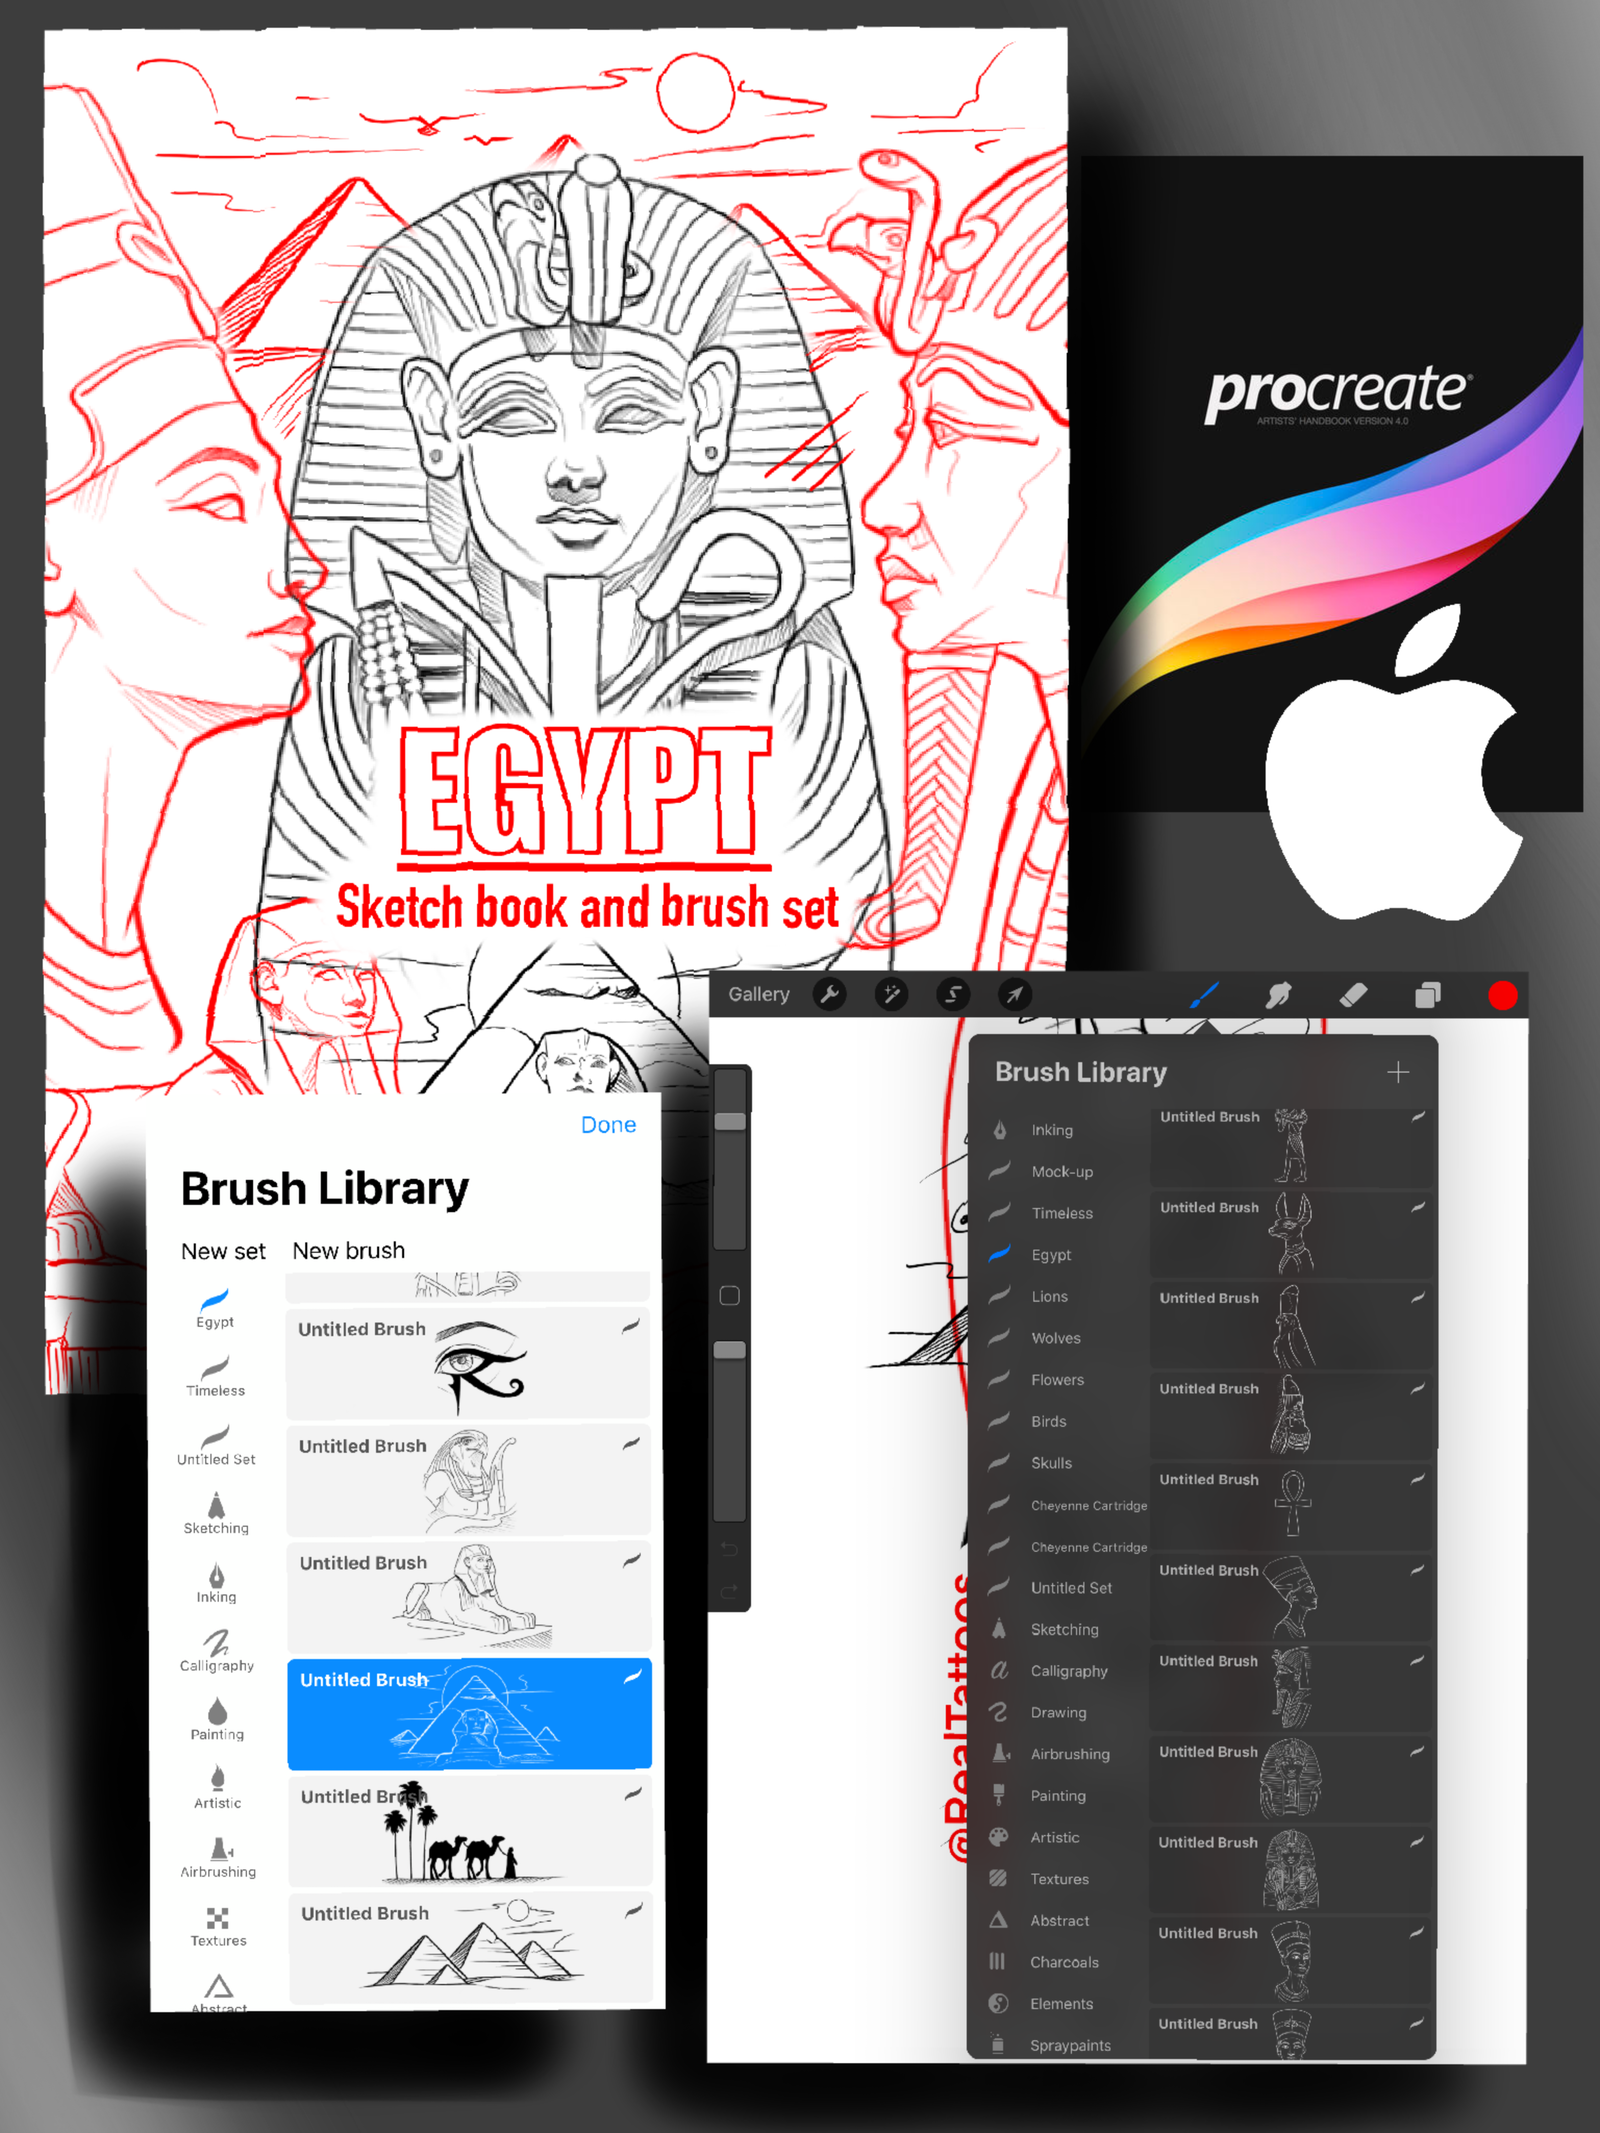 15 Pages Of Designs And 20 Different Brushes Brush Sets Are Only Compatible With Procreate For Ipad And Iphone In 2020 Sketch Book Egypt Tattoo Design Egypt Tattoo